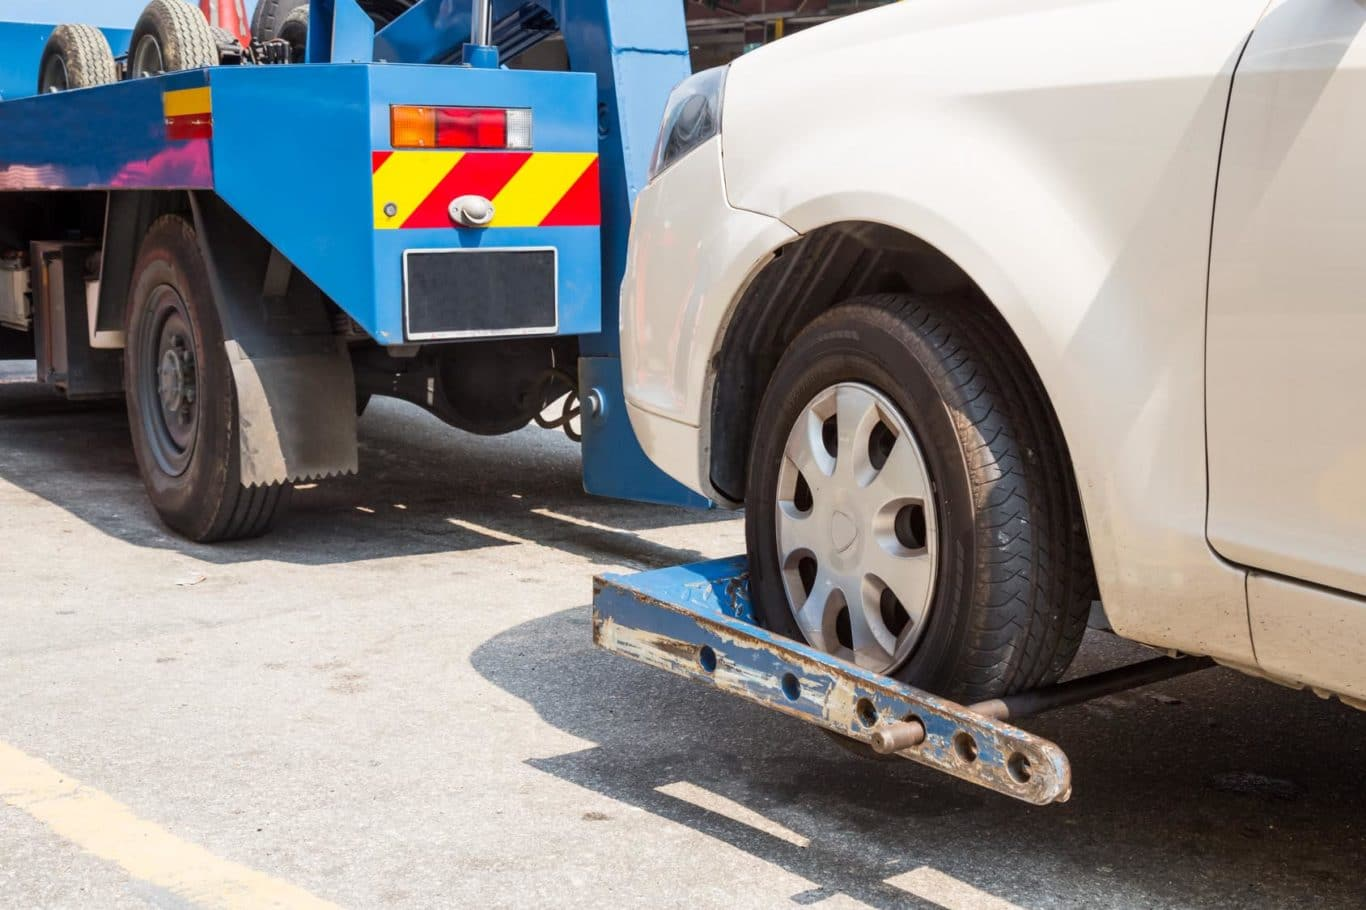 Killincarrig expert Car Recovery services